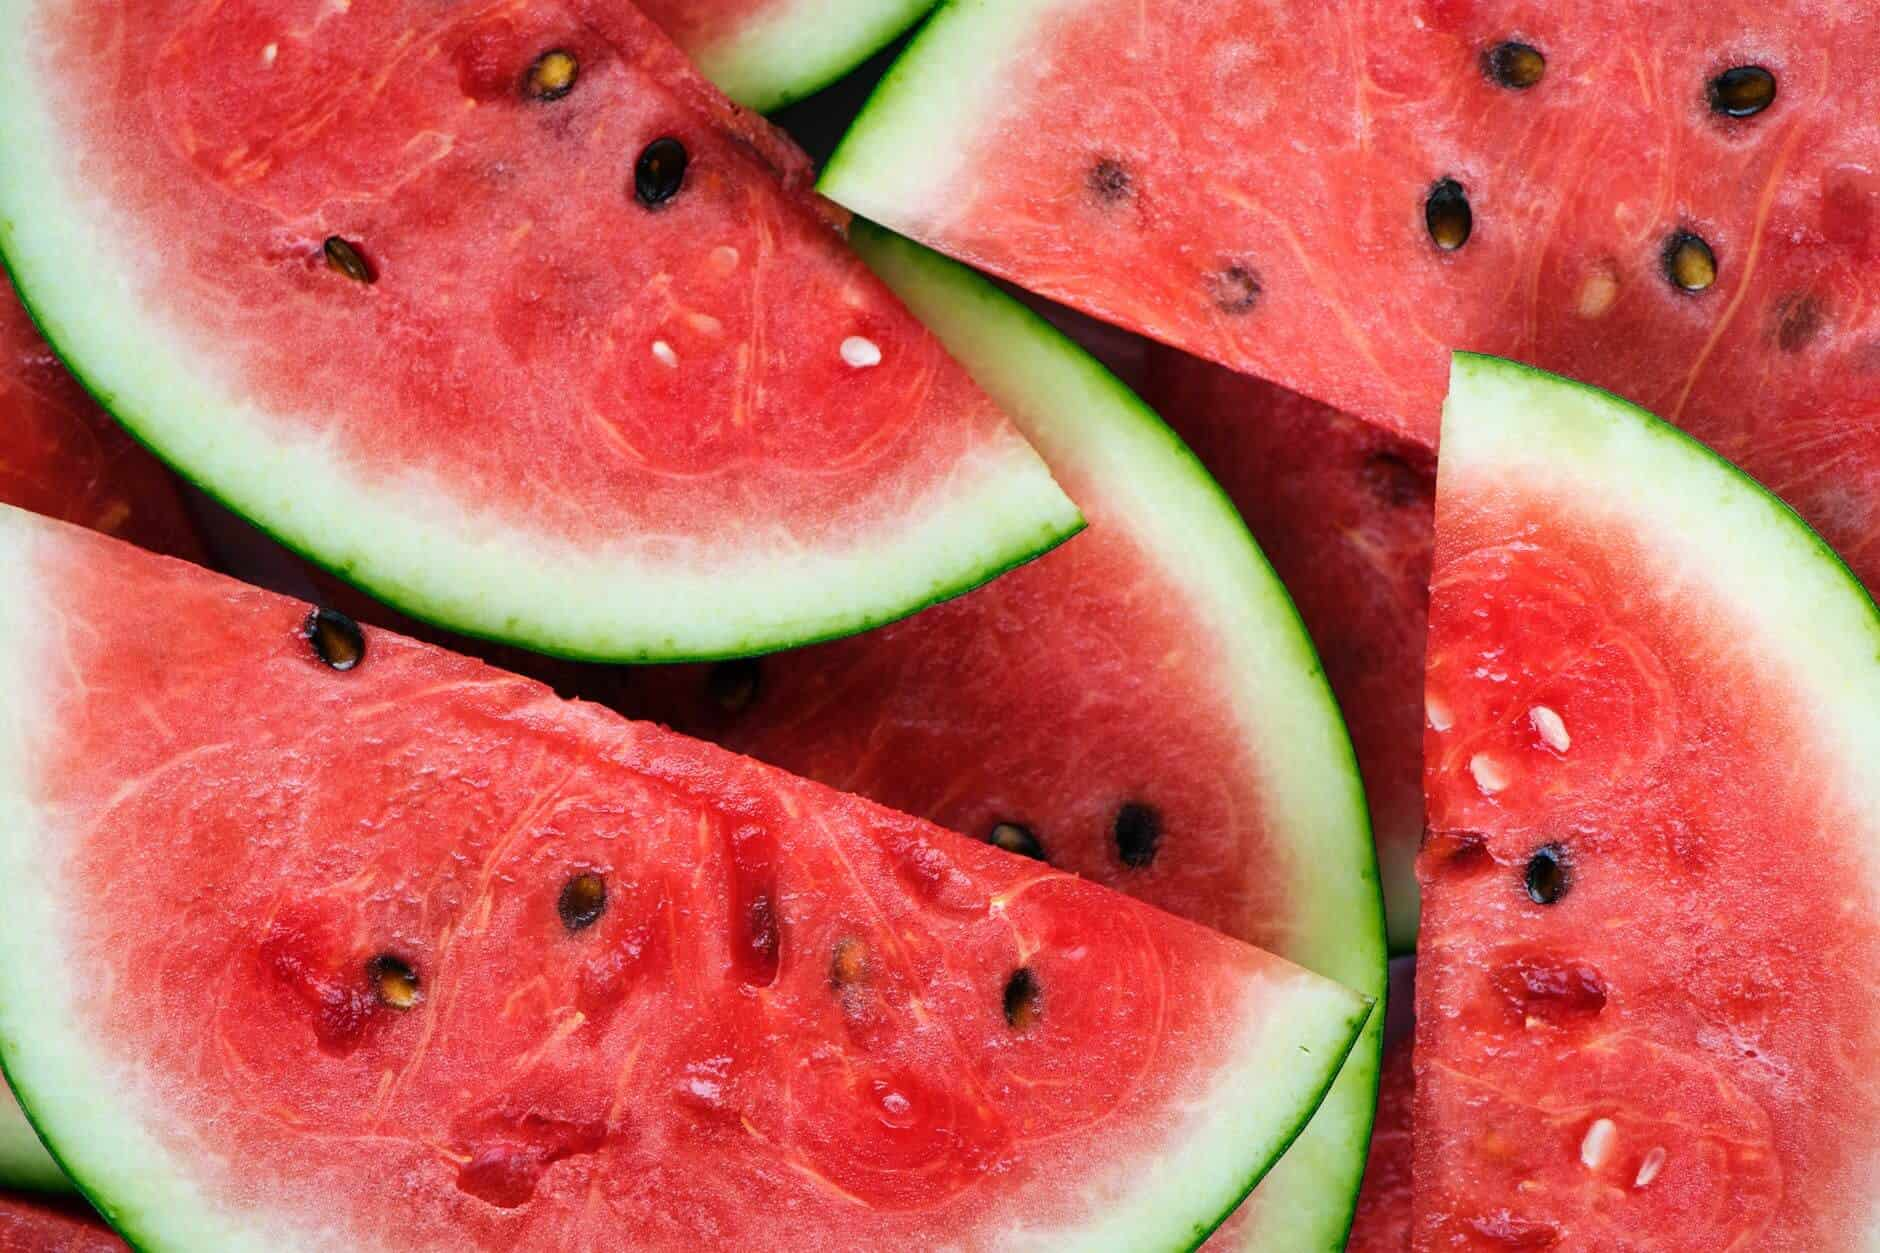 Watermelon Calories And Nutrition Facts